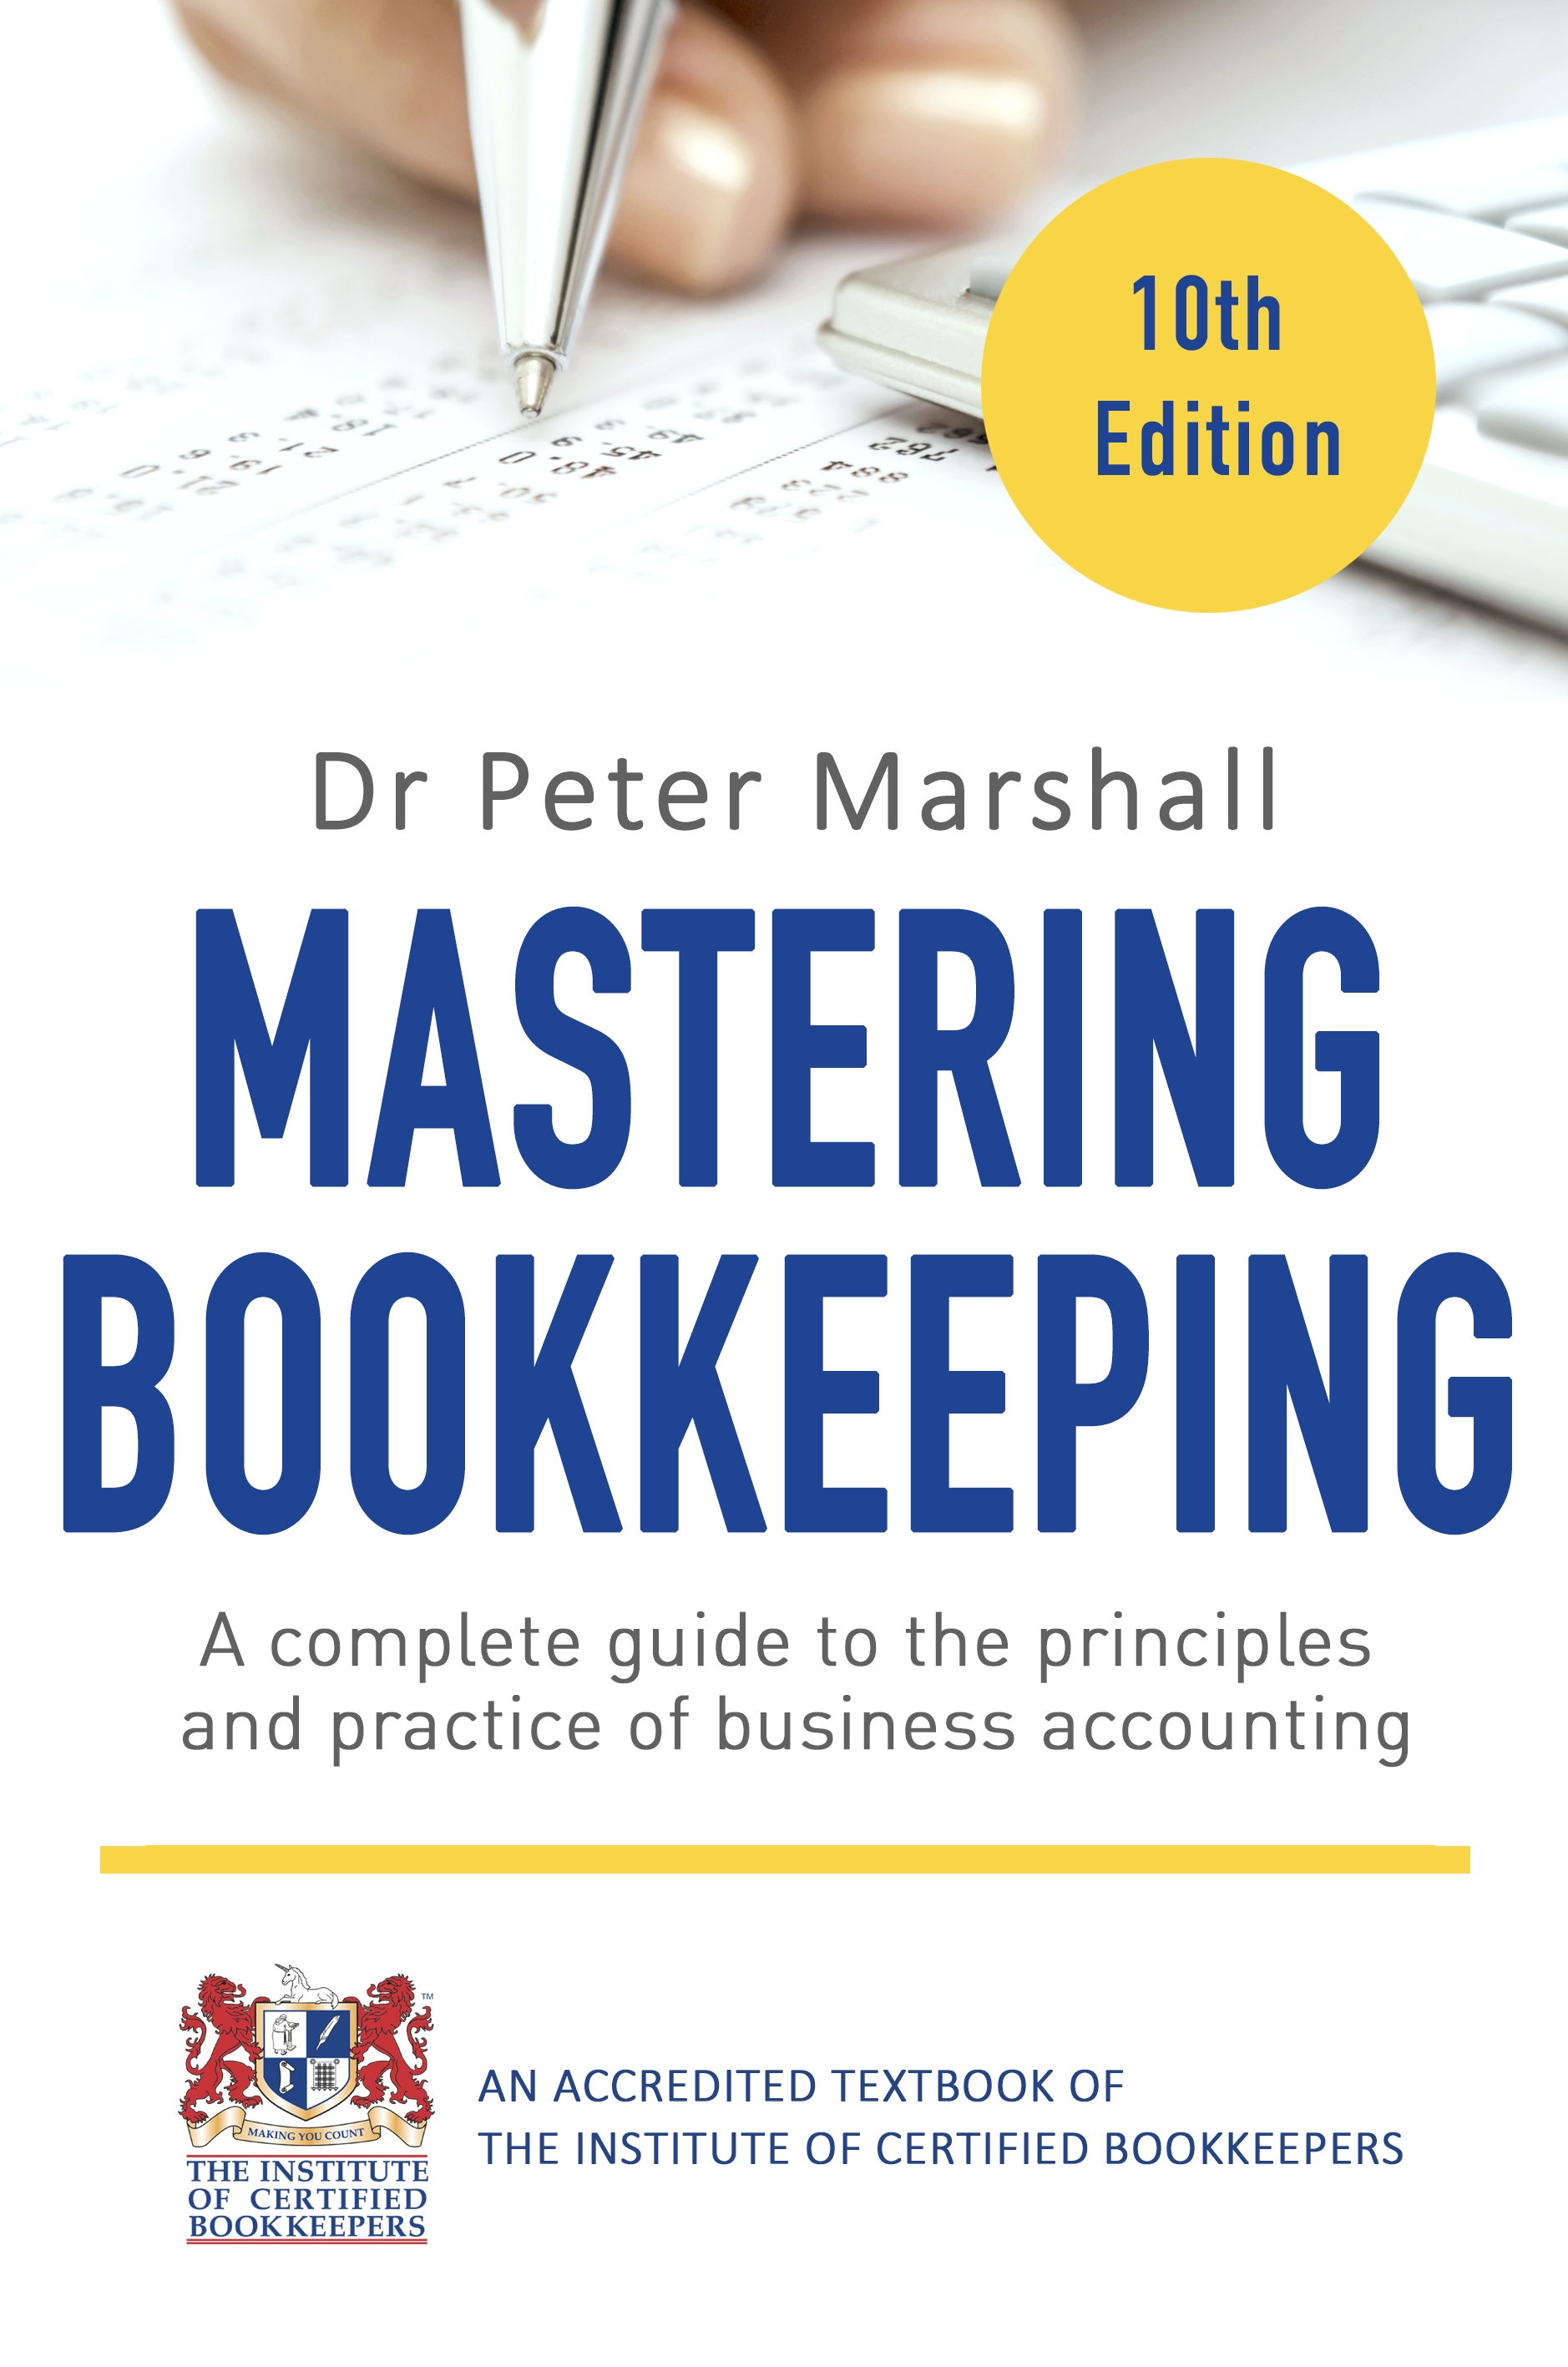 Download Ebook Mastering Bookkeeping, 10th Edition by Peter Marshall Pdf